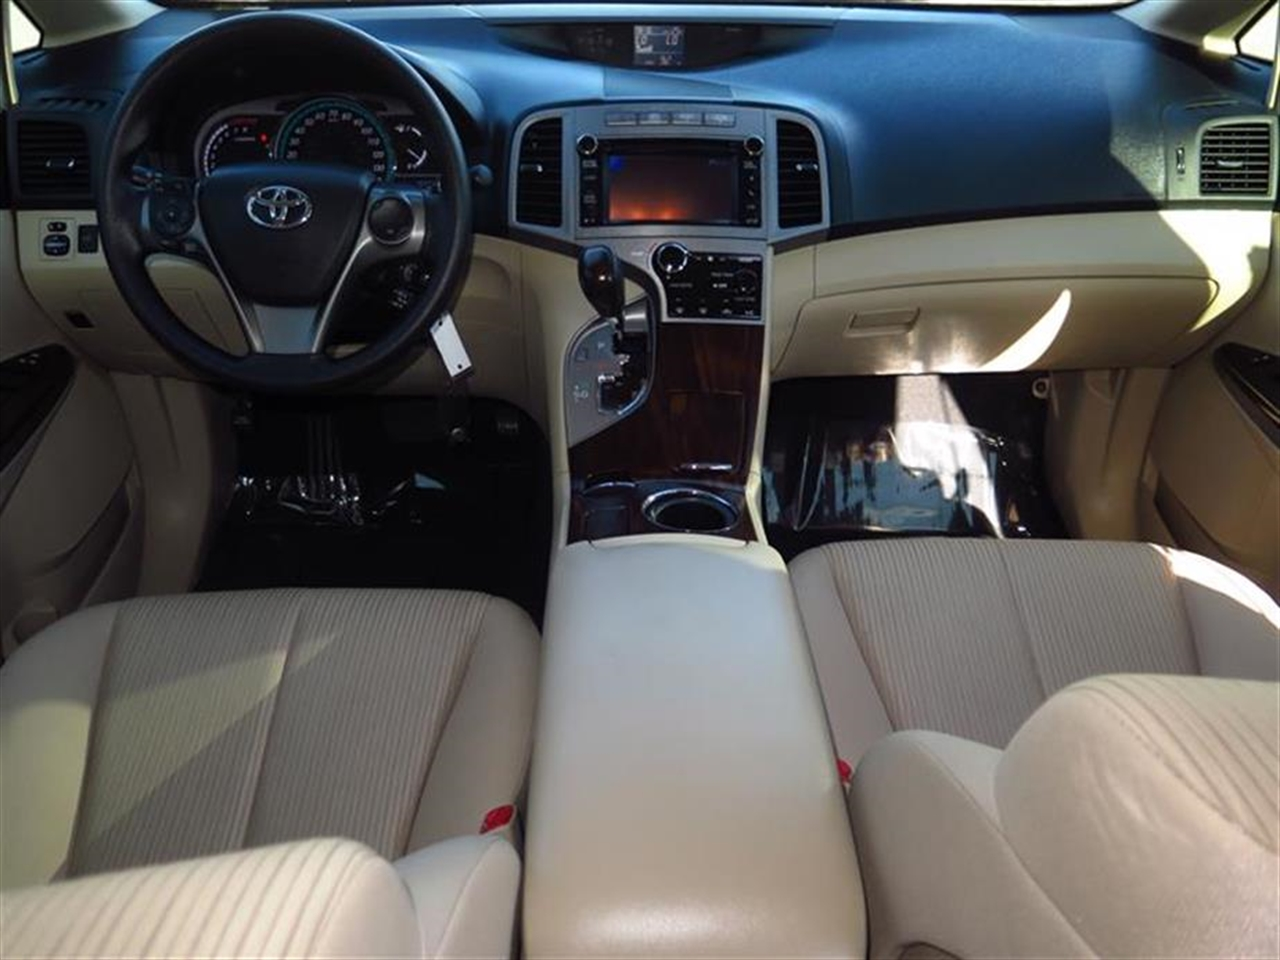 2014 TOYOTA VENZA 4dr Wgn V6 FWD LE 10330 miles 3 12V DC Power Outlets 5 Person Seating Capacity